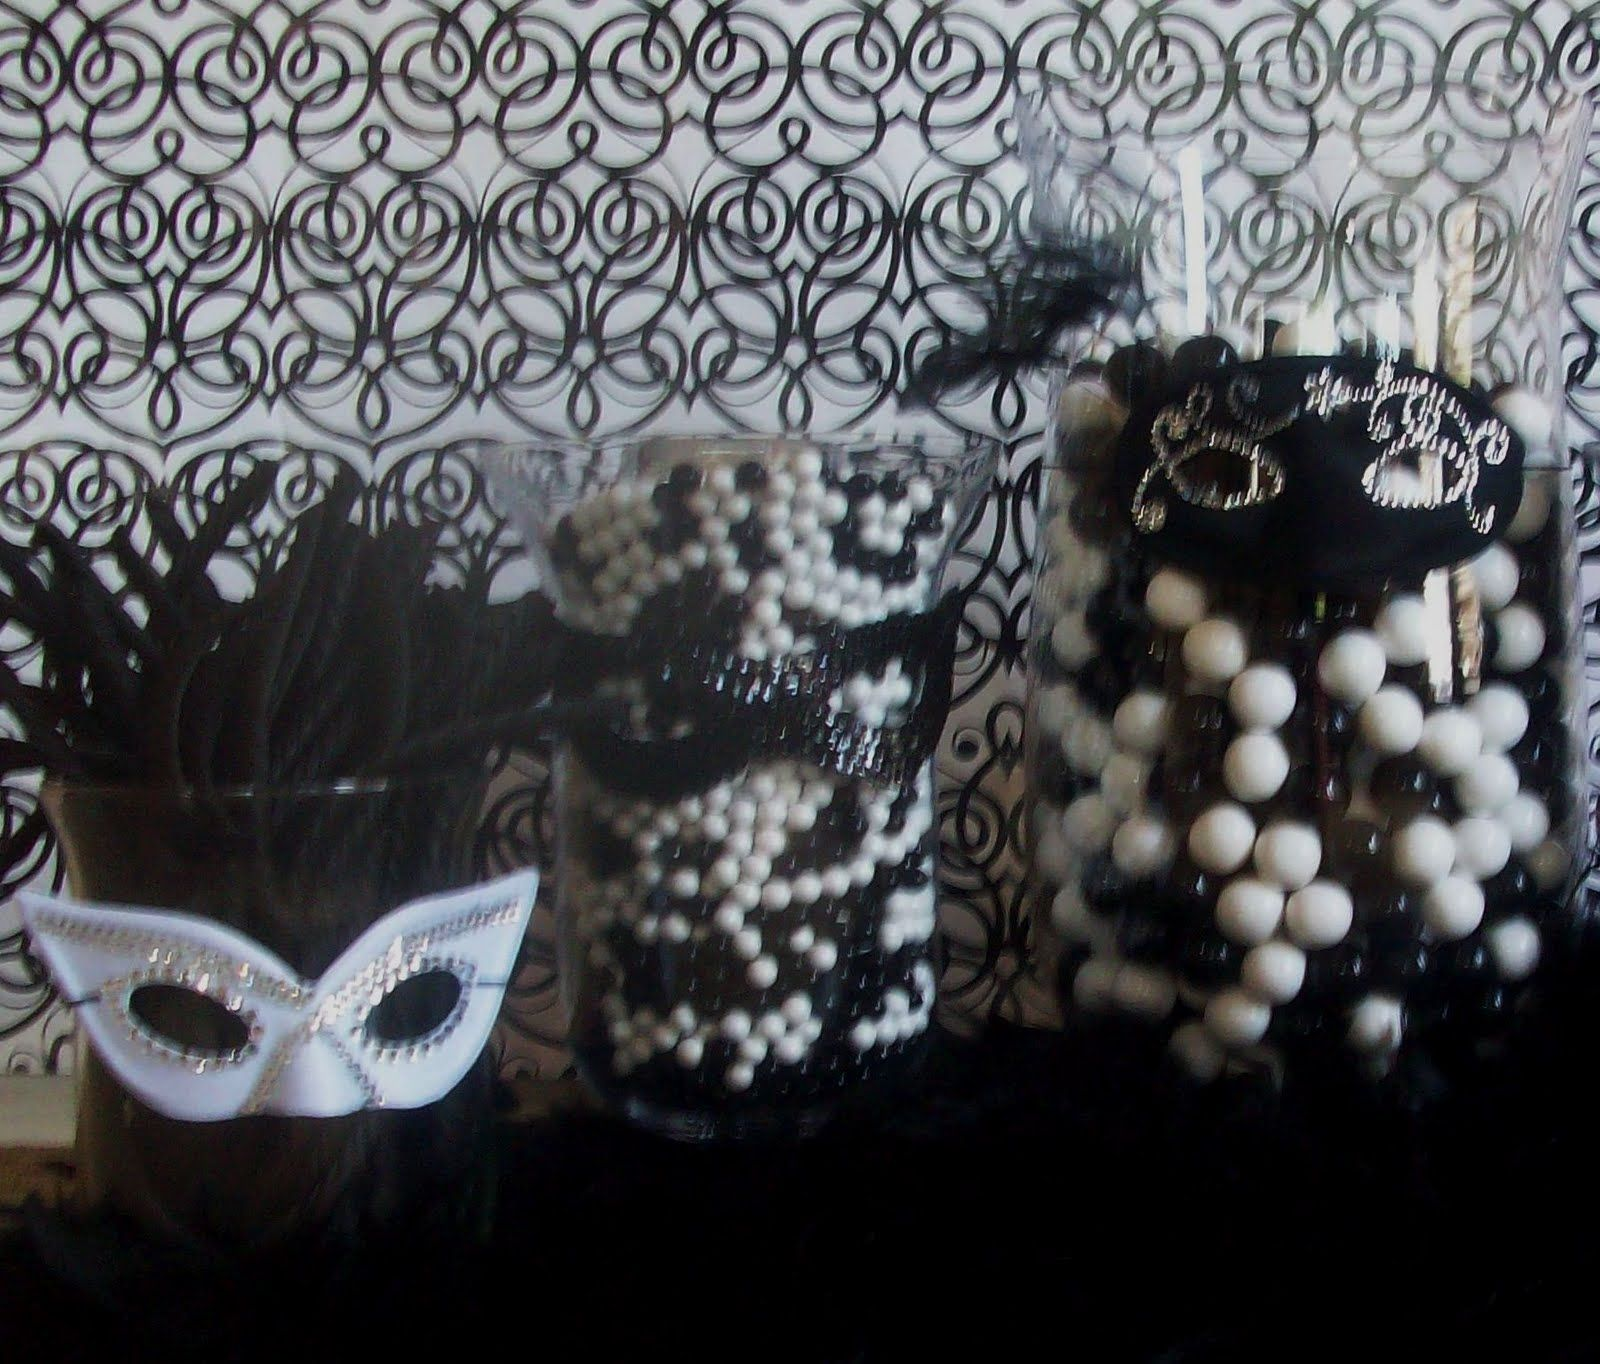 Masquerade Ball Prom Decorations: Best 25+ Masquerade Party Decorations Ideas On Pinterest